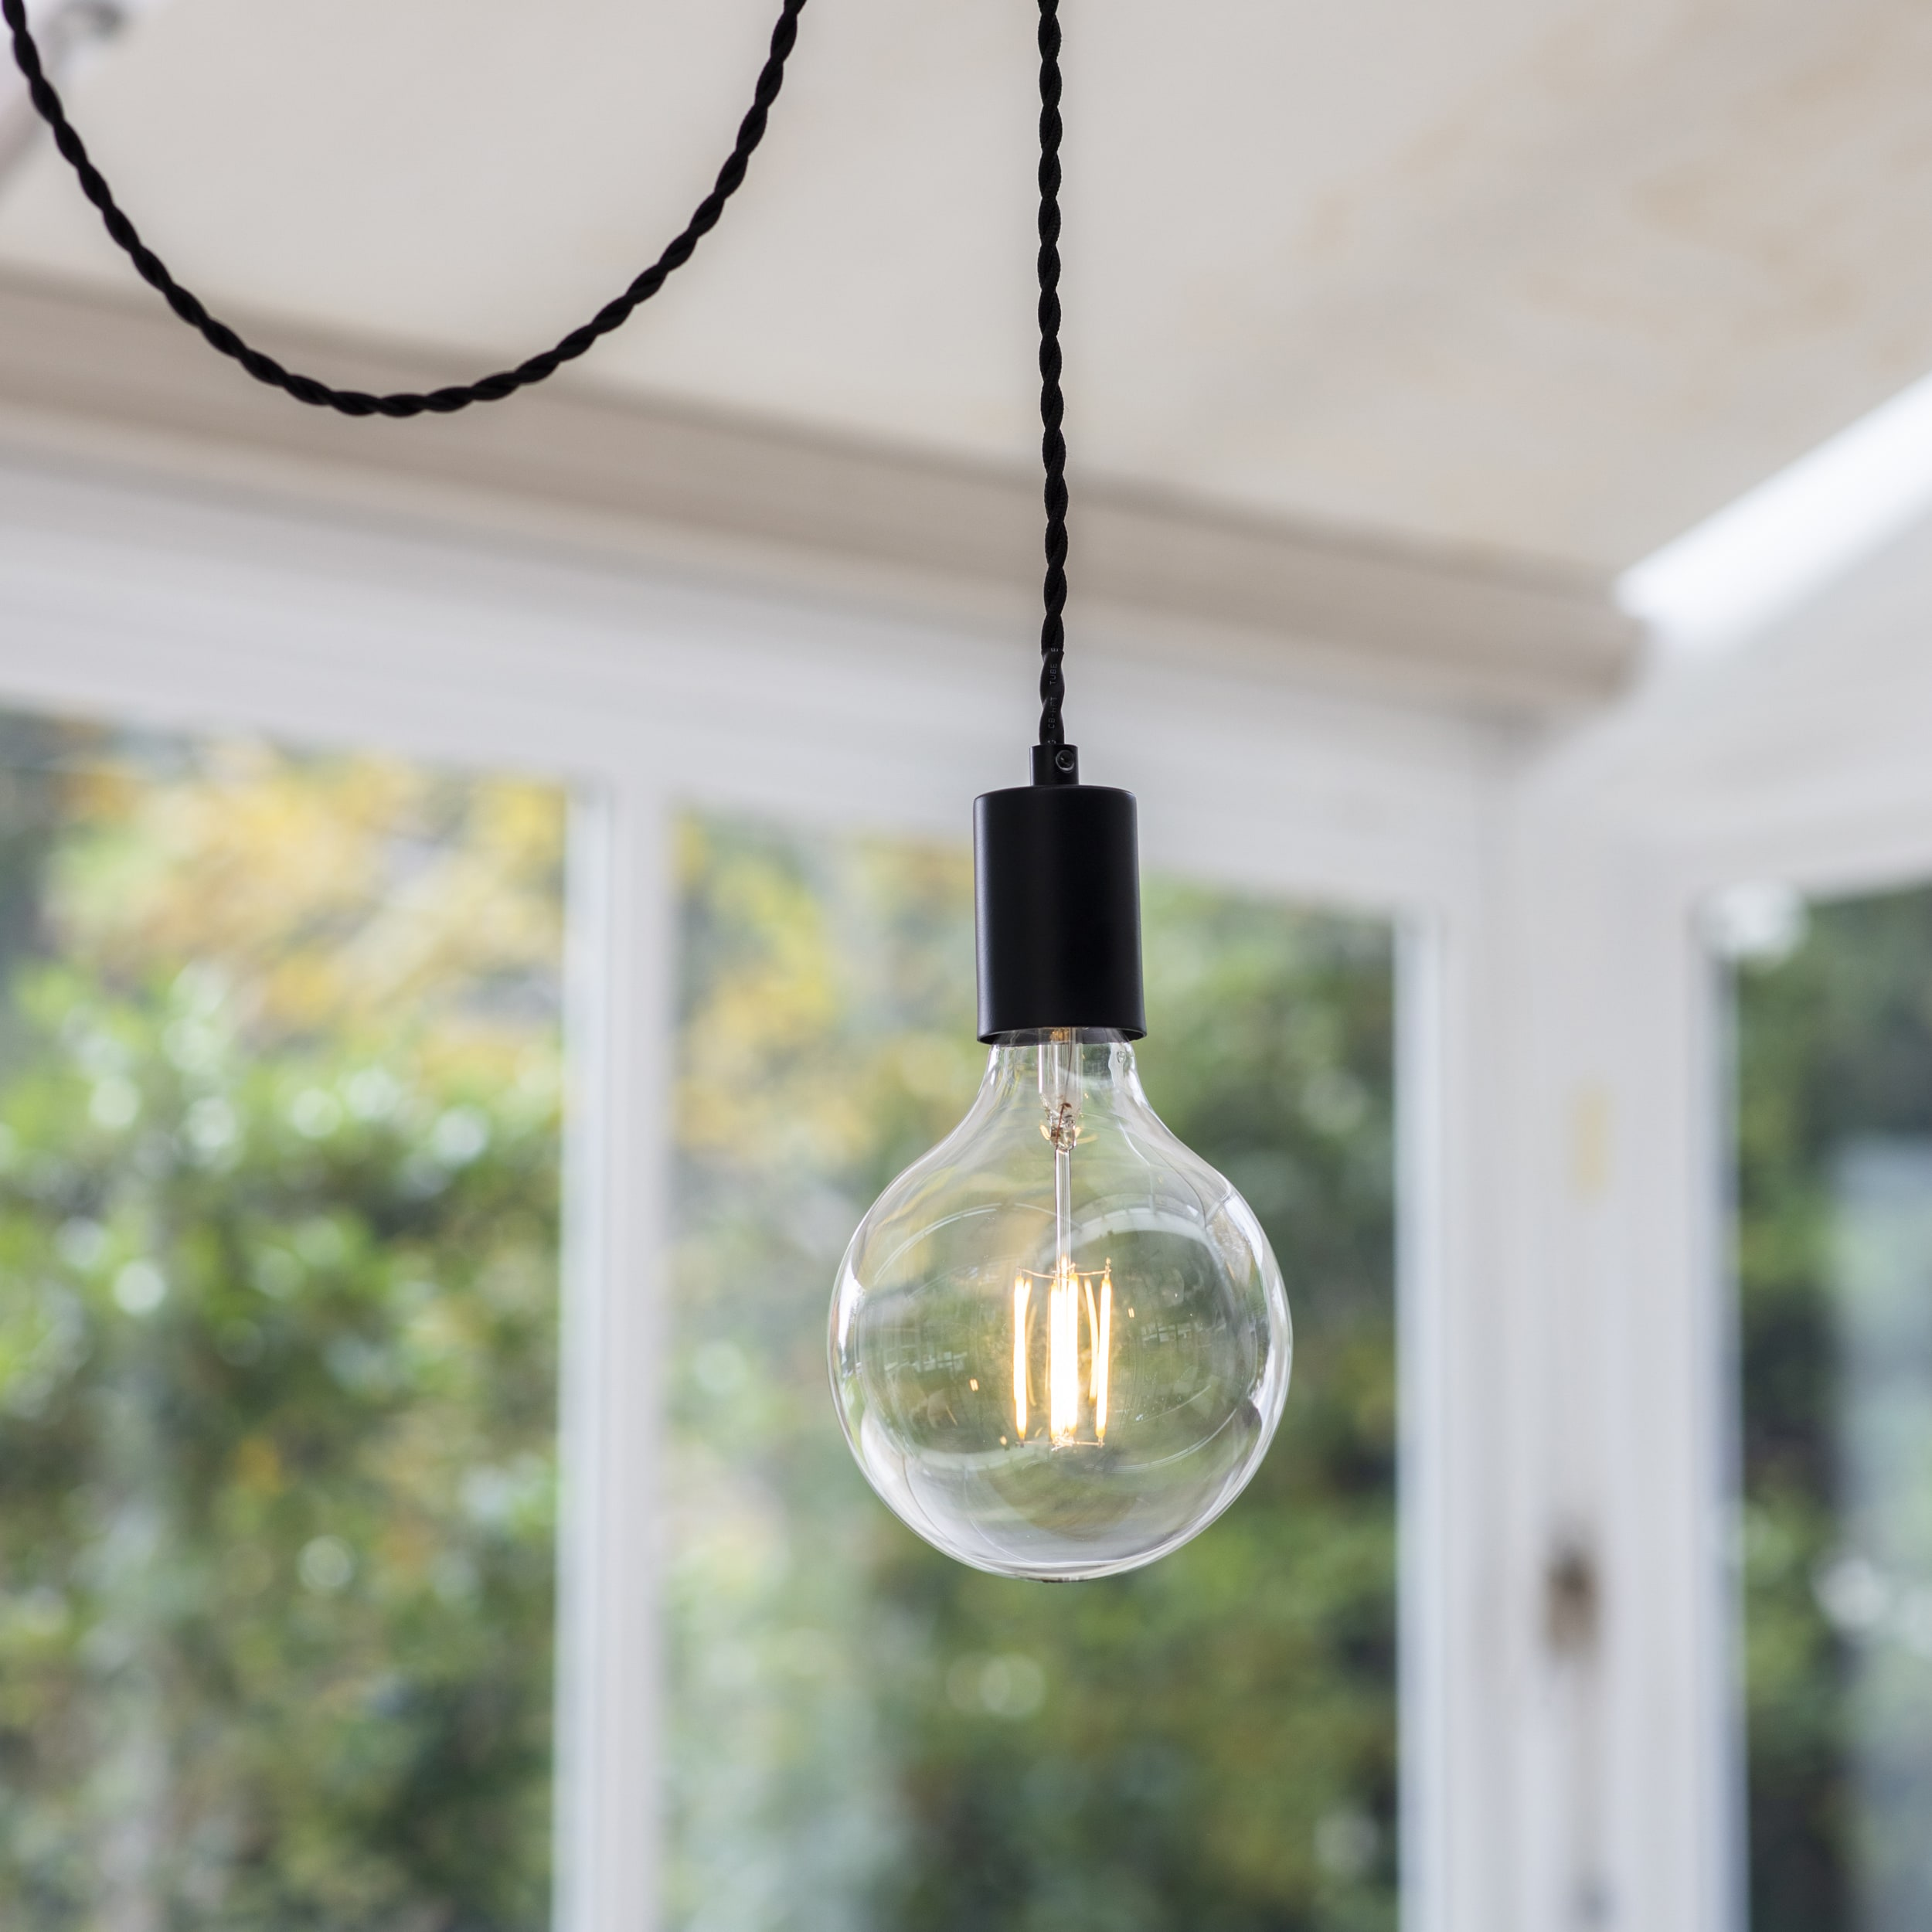 Soho Pendant Light in Black - Steel | Garden Trading